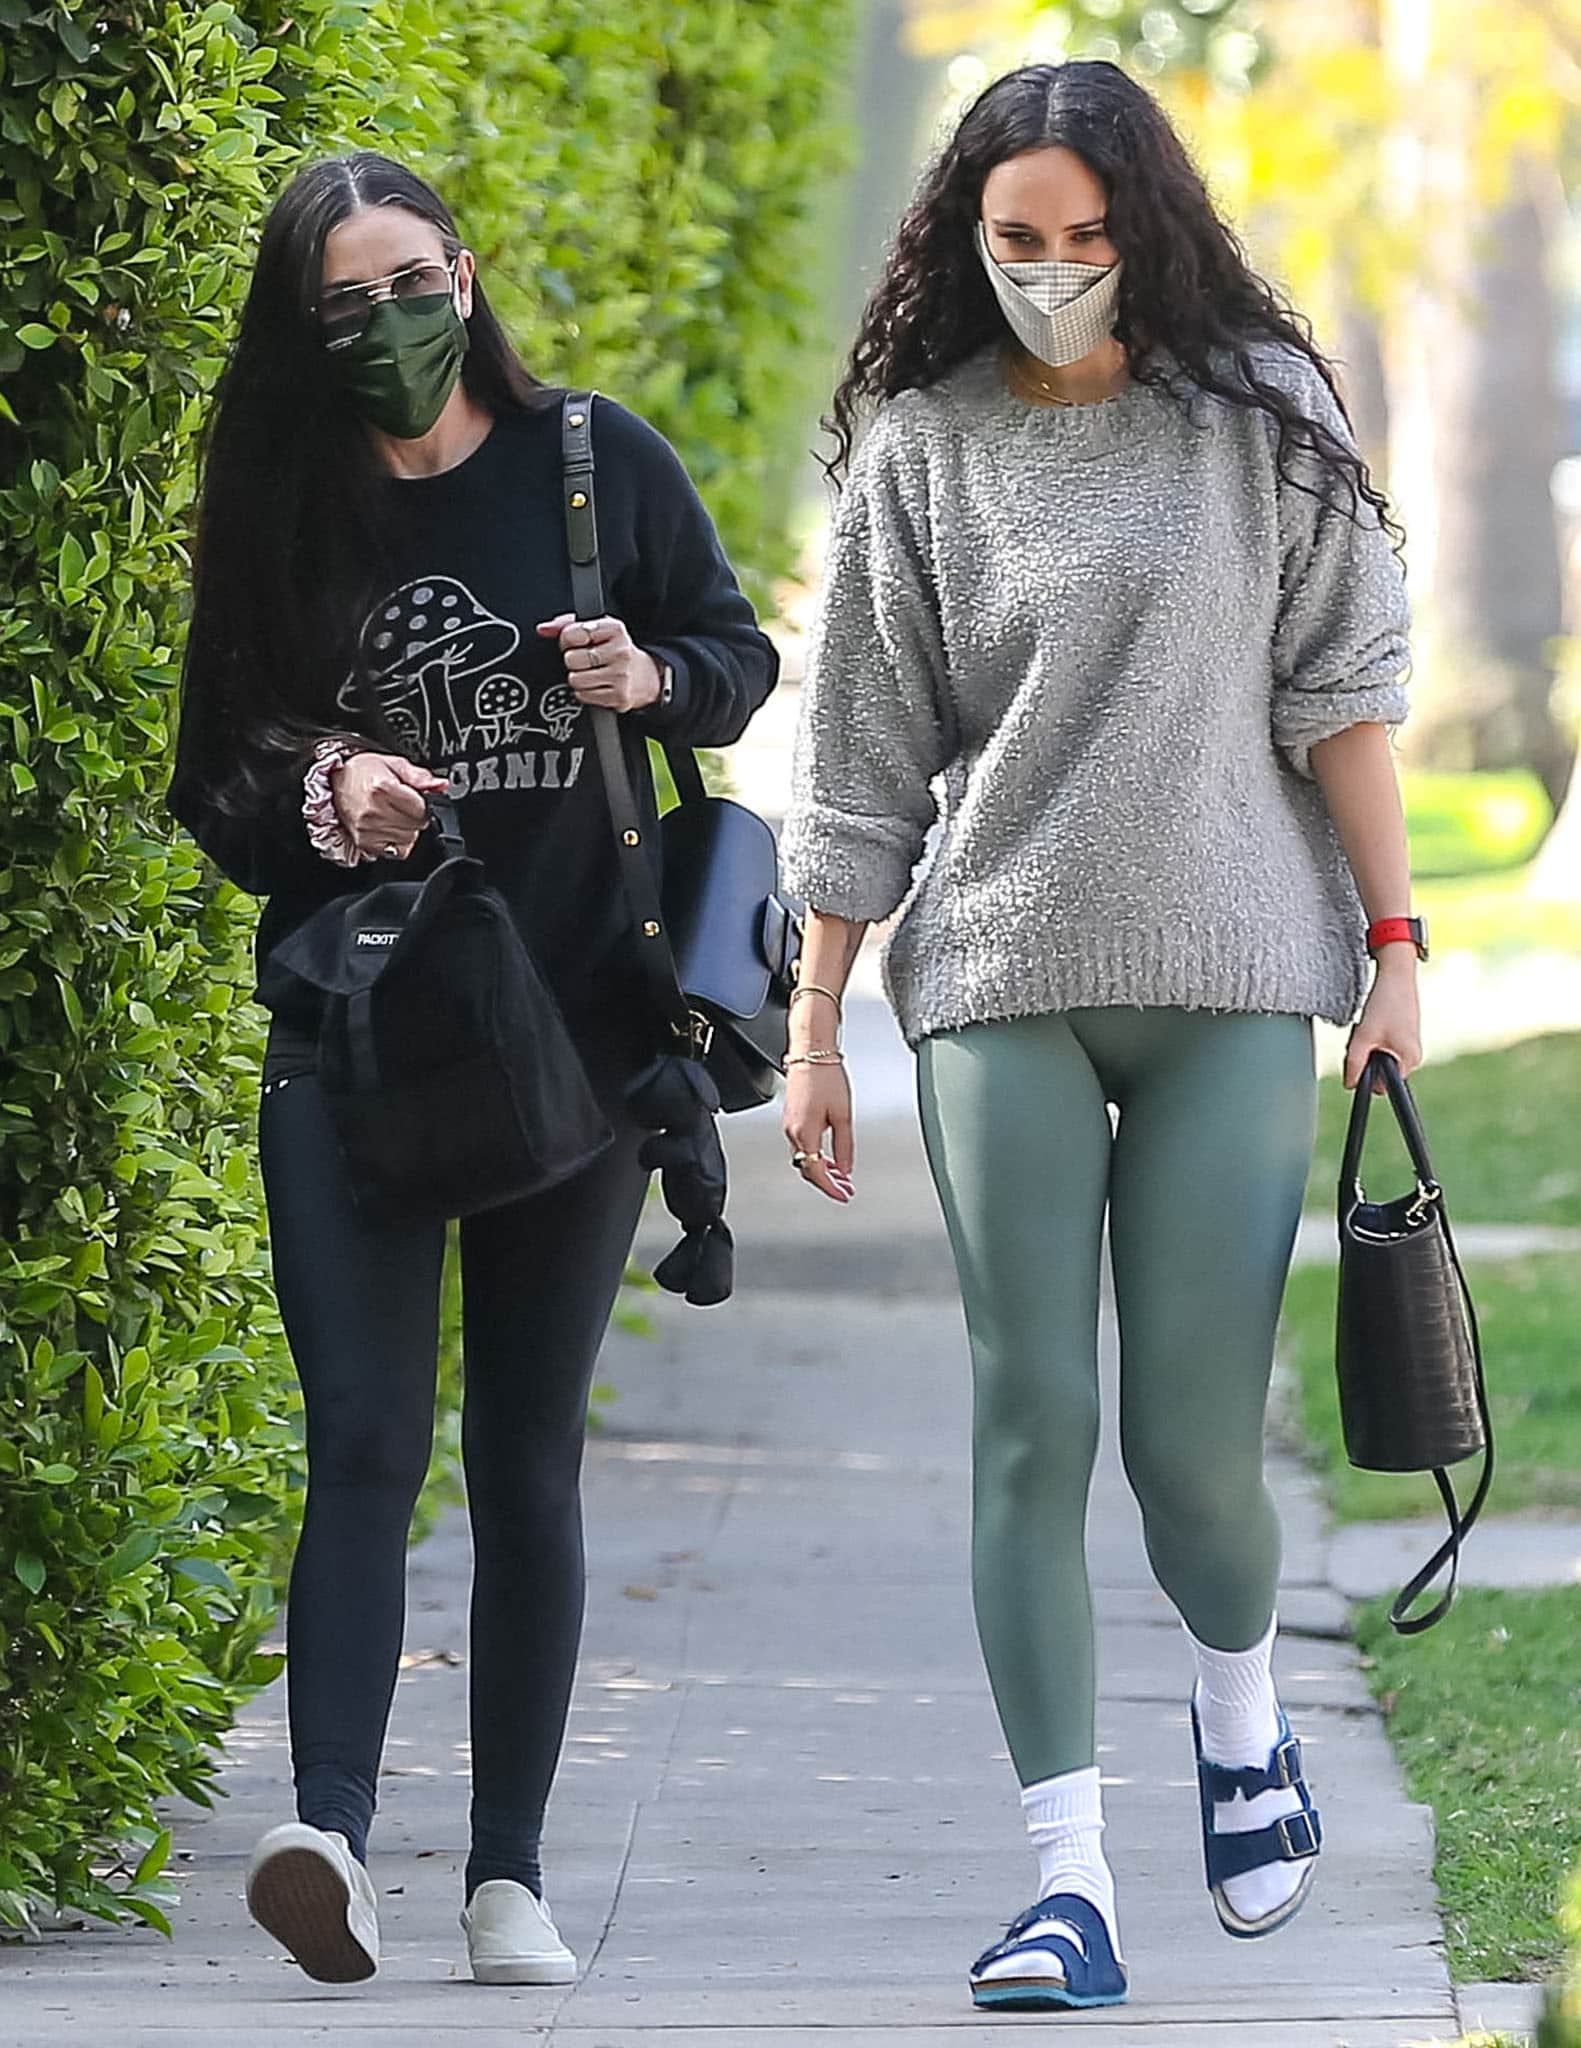 Demi Moore and daughter Rumer Willis heading to a private Pilates class at Forma Pilates in West Hollywood on April 5, 2021